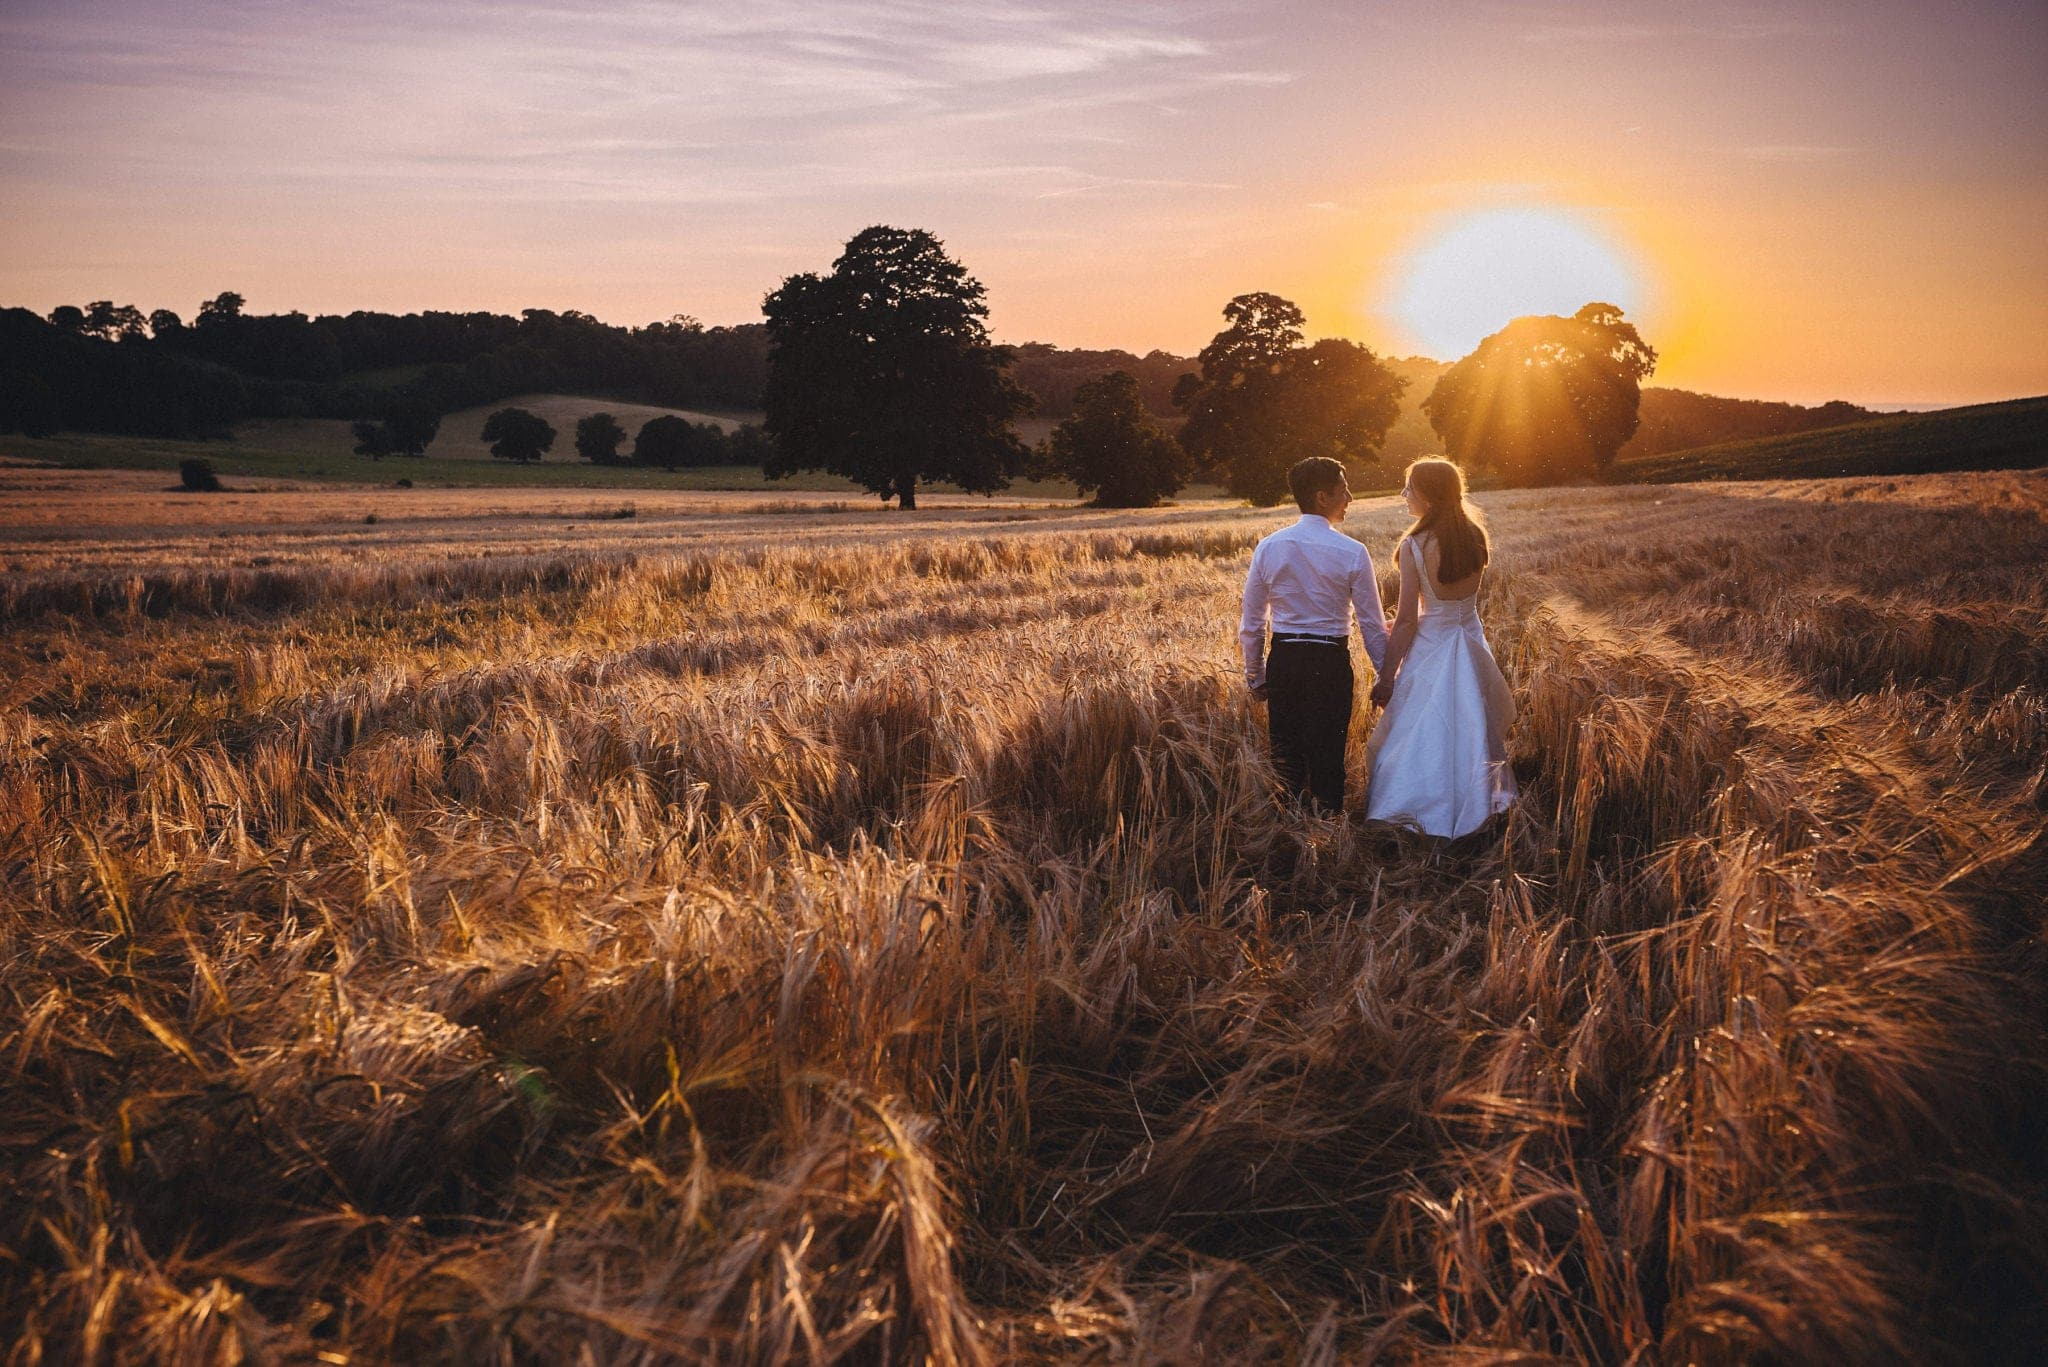 Bride and groom in wheatfield at sunset